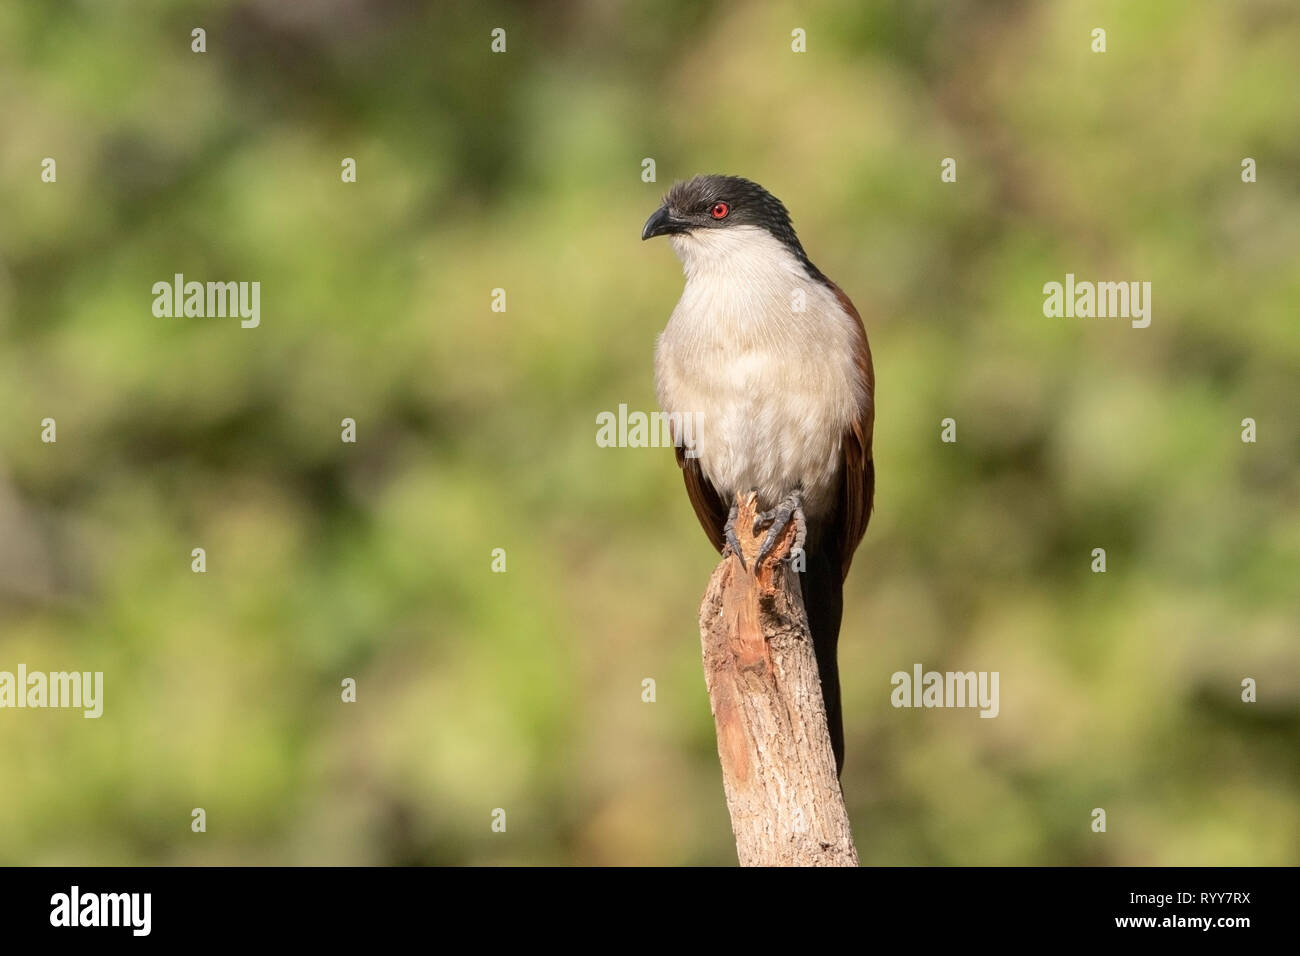 Senegal Coucal, Makasutu Forest, Gambia 3 March 2019 - Stock Image